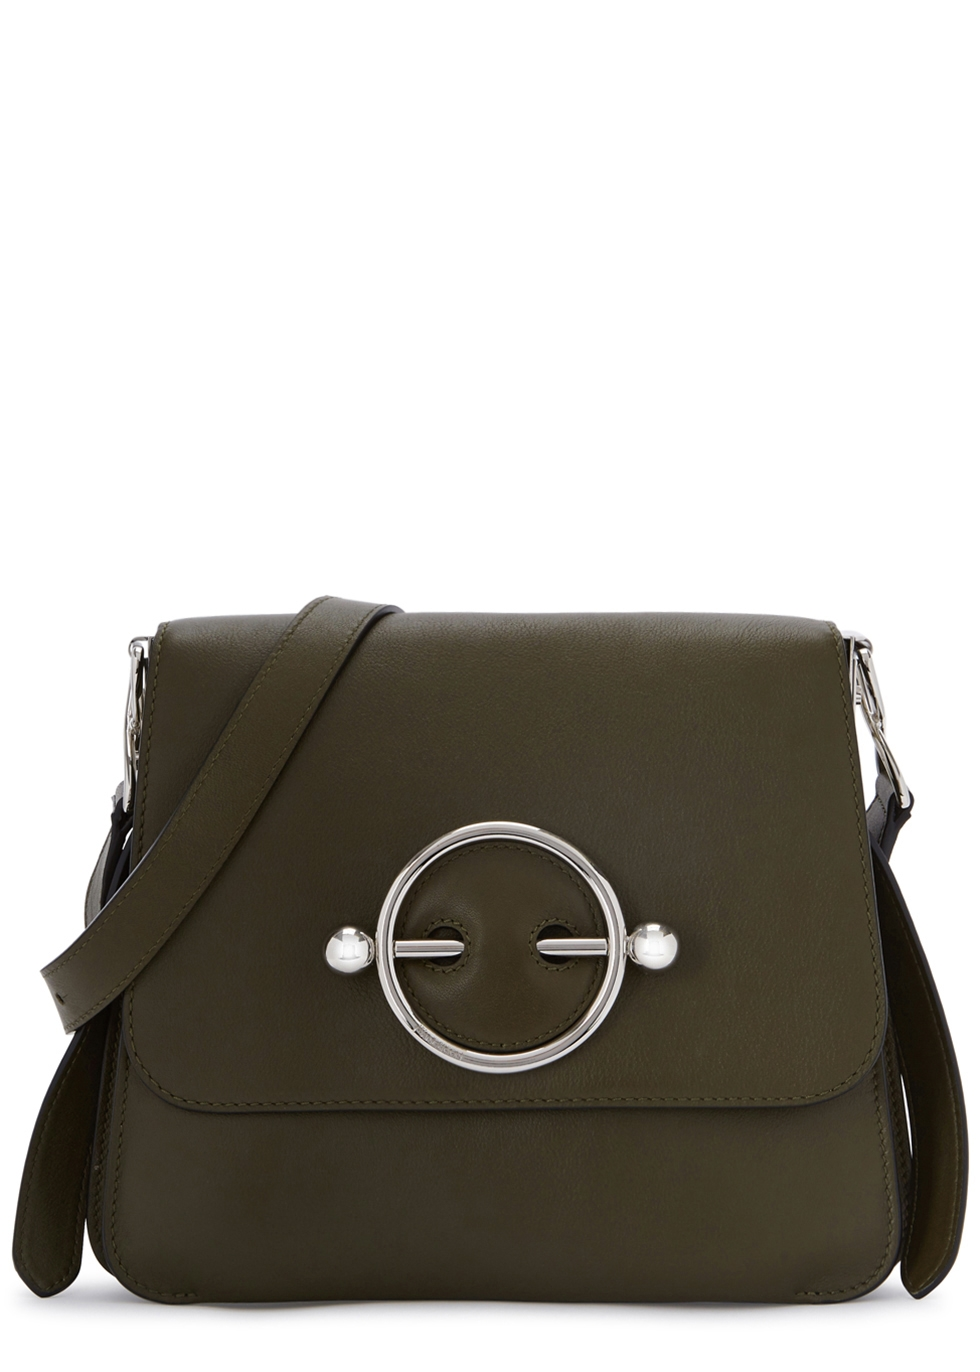 J.W.ANDERSON DISC OLIVE LEATHER CROSS-BODY BAG